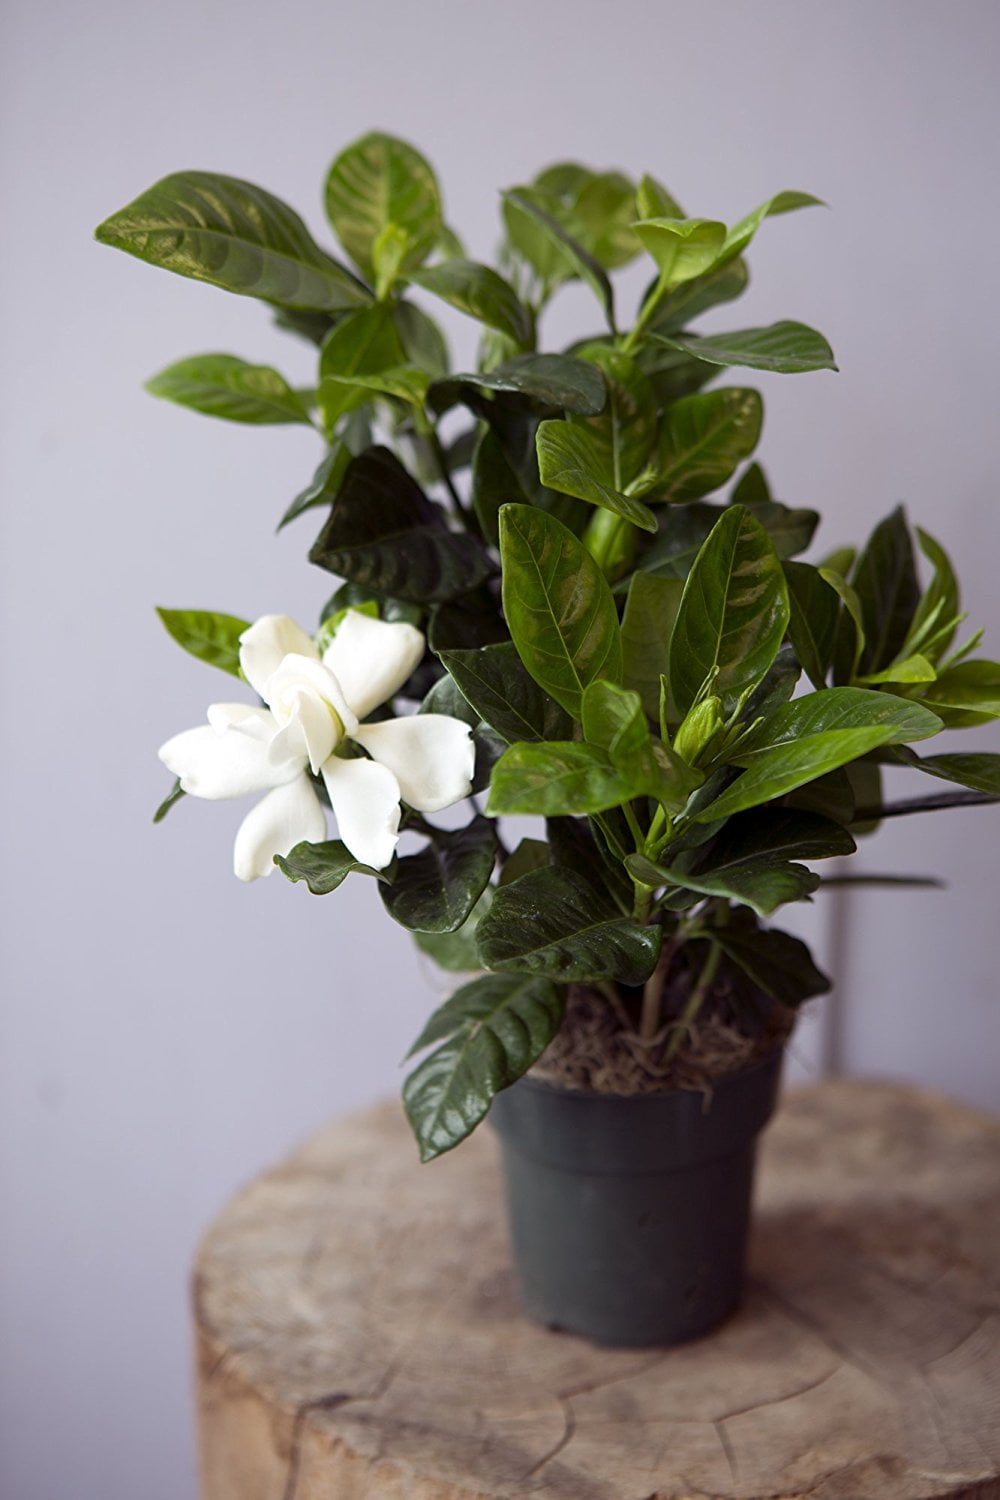 Kabloom Gardenia Bonsai Tree Amazon Now Delivers Live Plants Right To Your Door Shop These 10 Picks Under 27 Popsugar Family Photo 8